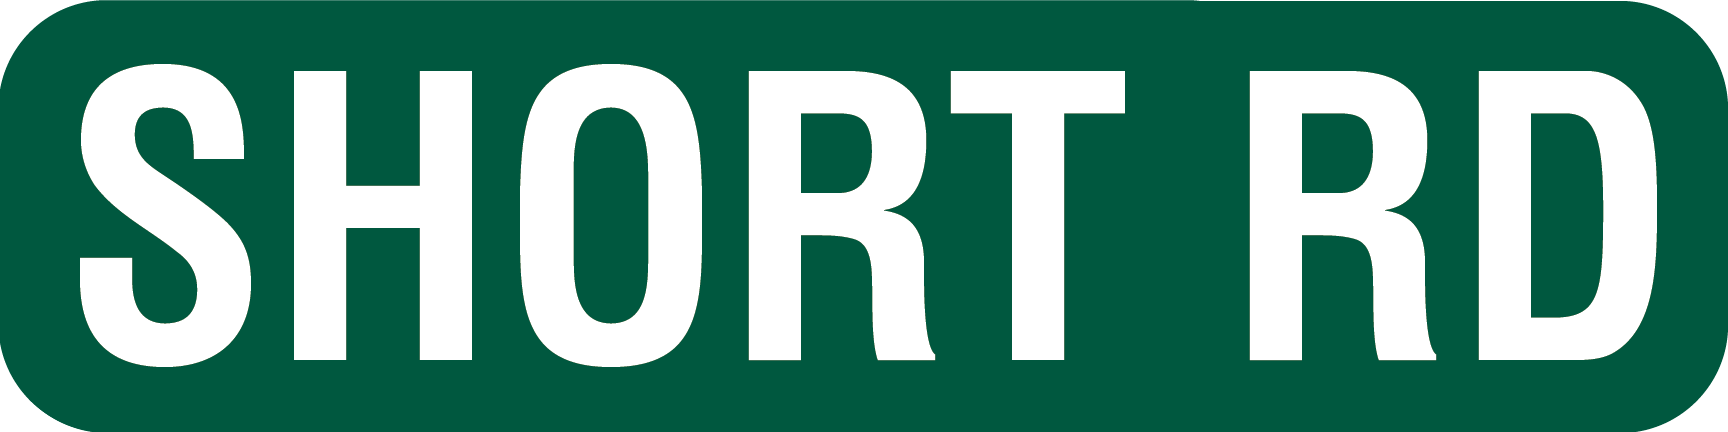 6x24 Street Sign for Short Road Names